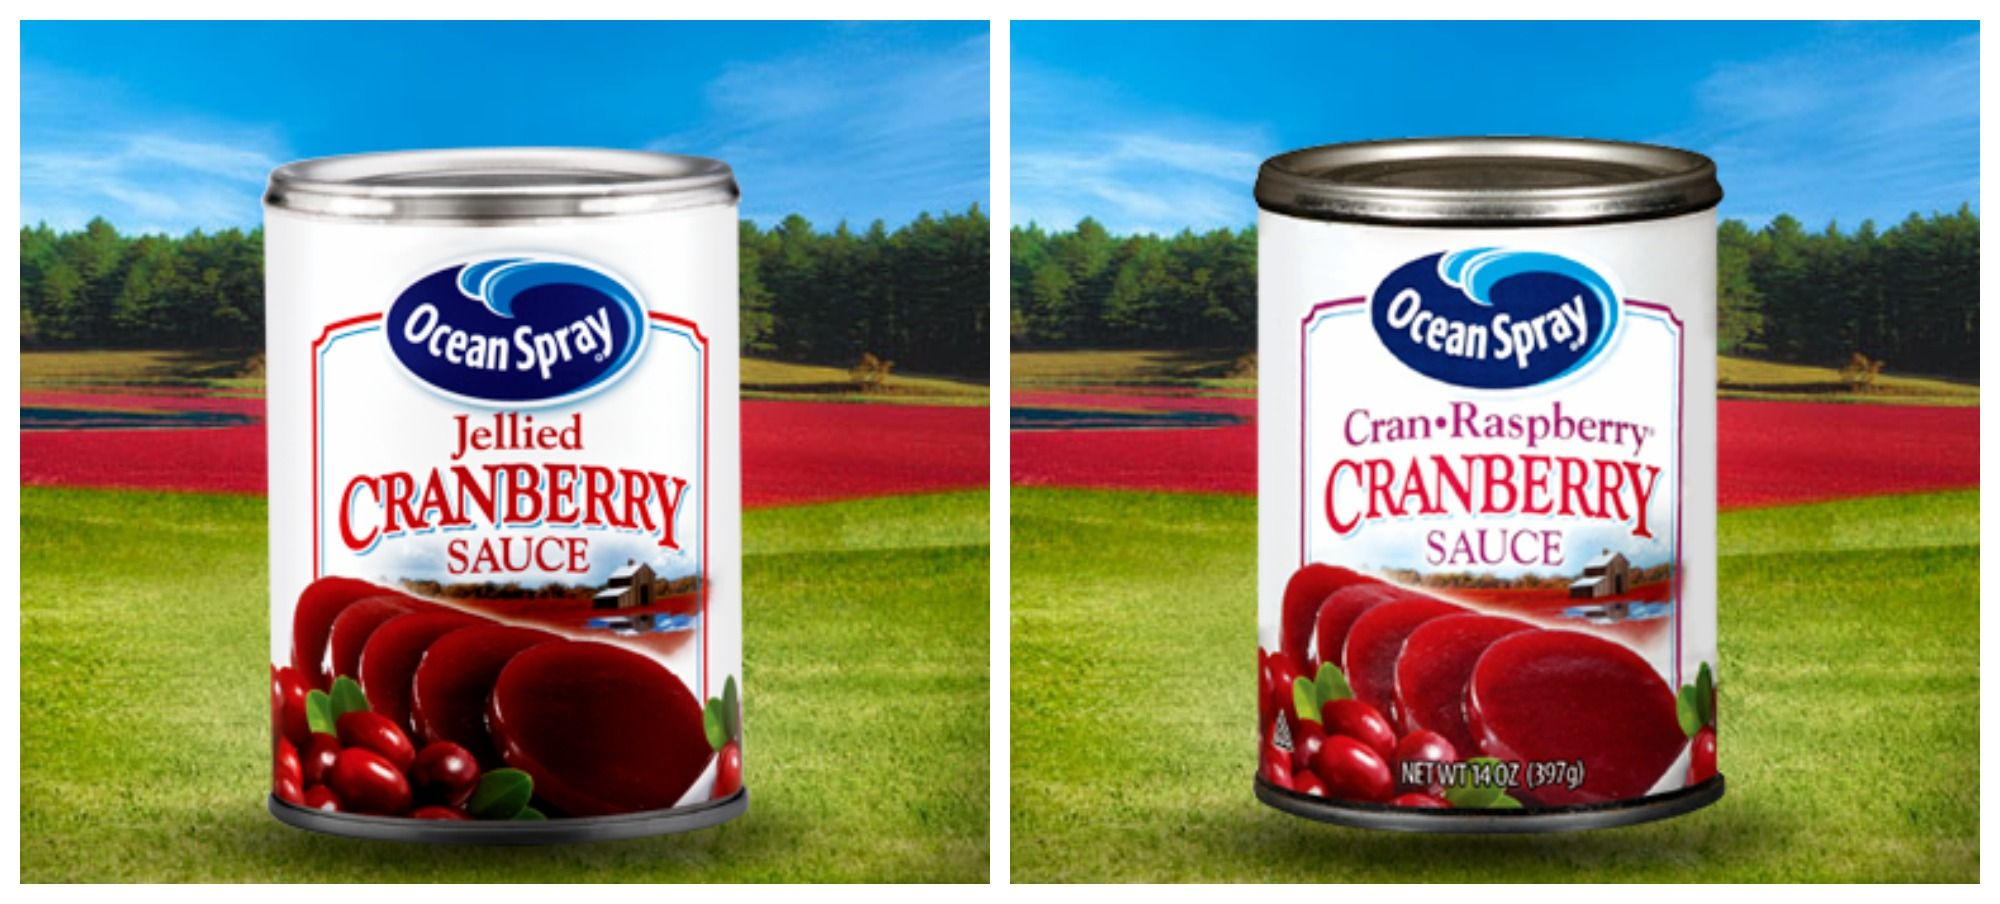 There S A Reason Why Cranberry Sauce Cans Are Upside Down Why Cranberry Sauce Cans Are Upside Down